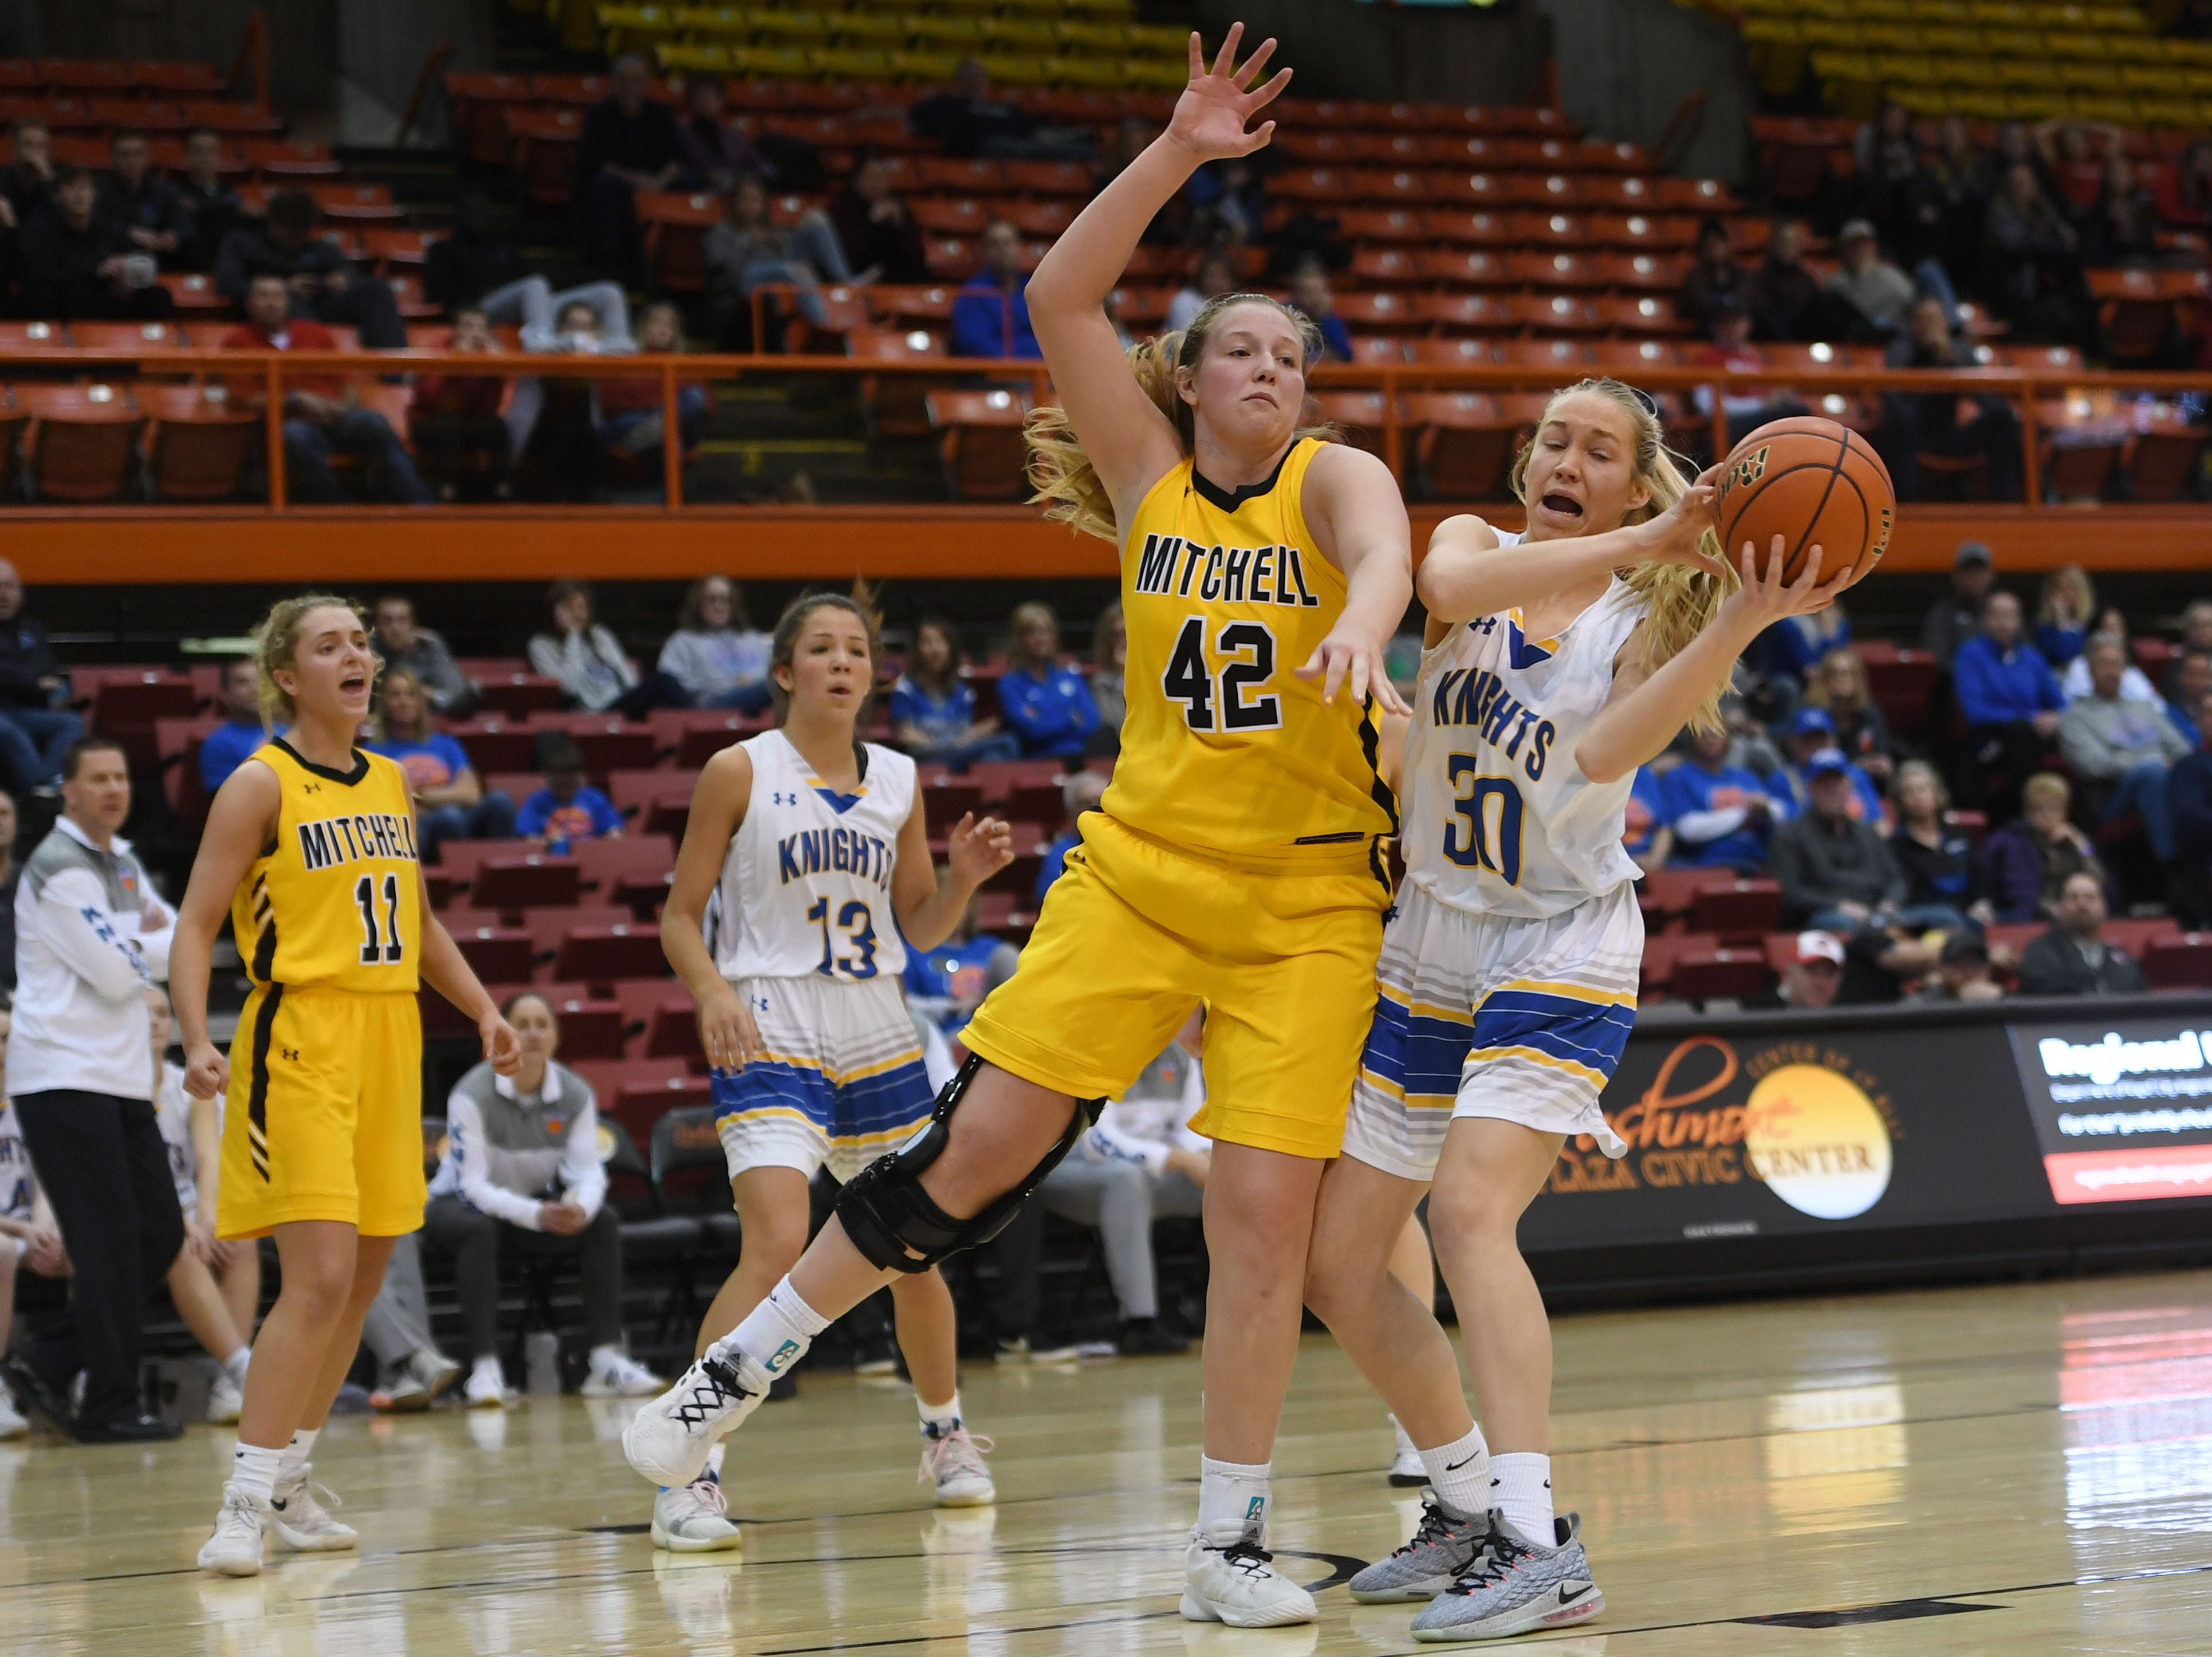 O'Gorman's Hannah Ronsiek goes against Mitchell's 	Mackenzie Miller in the Class AA quarterfinals Thursday, March 14, in Rapid City.